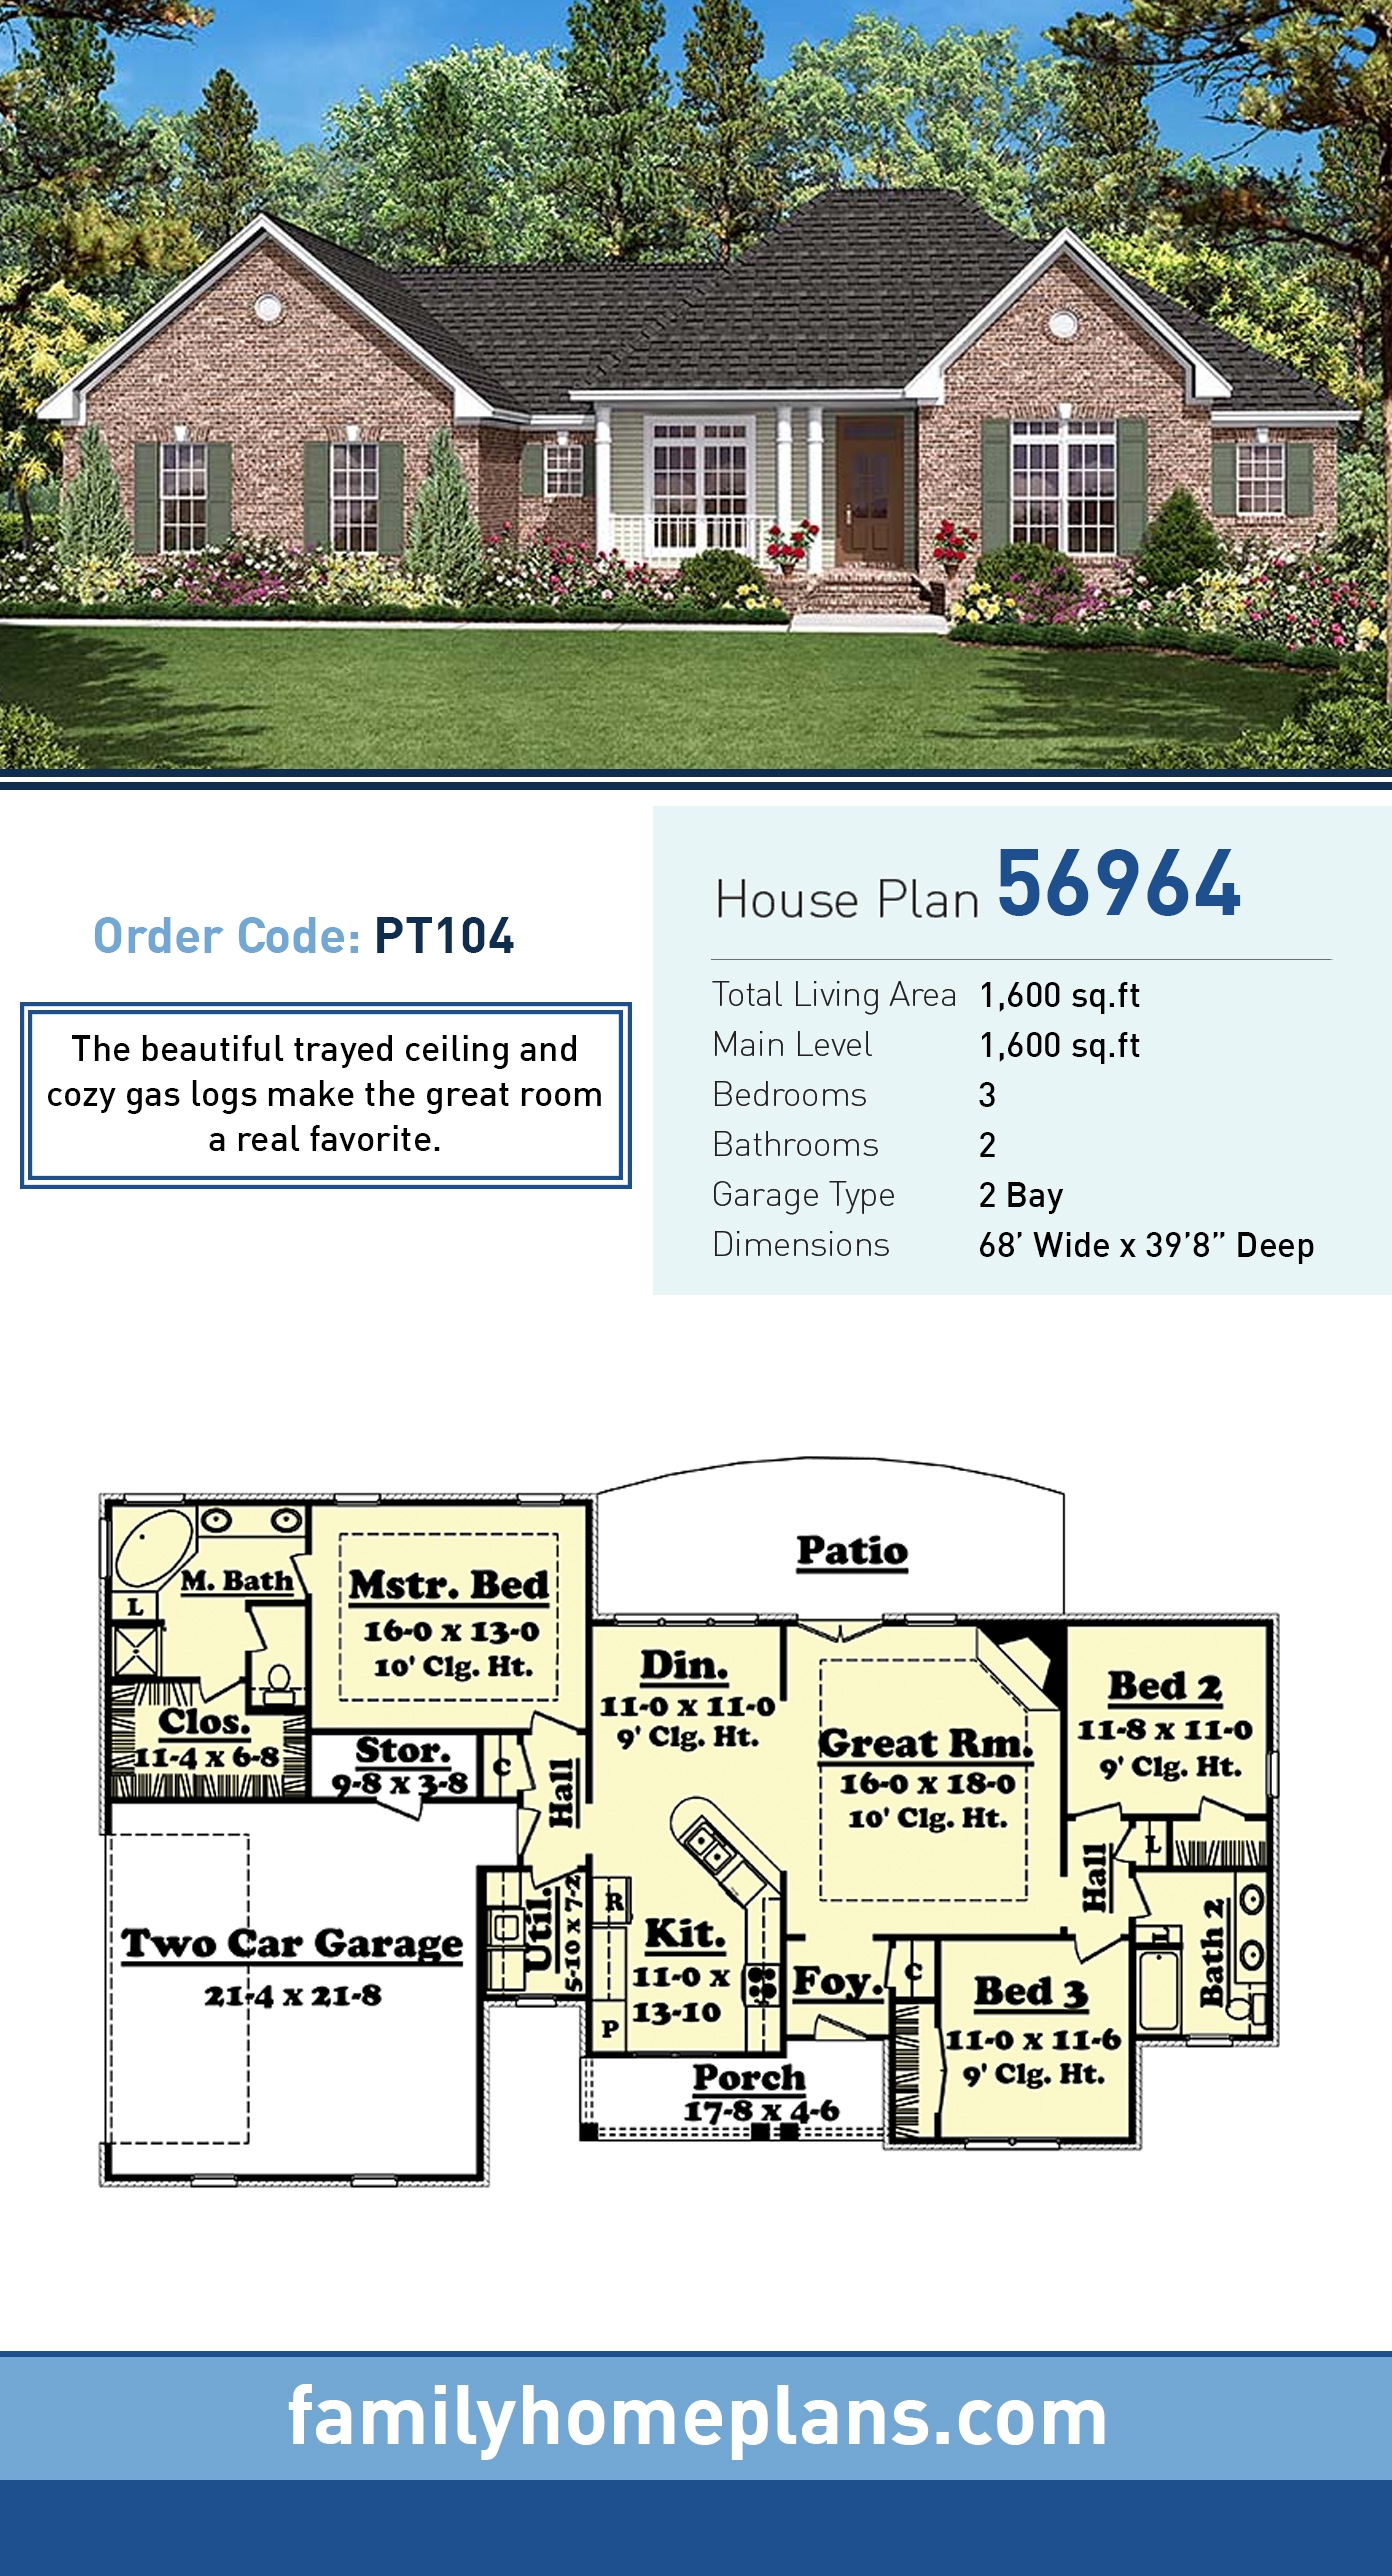 Country, Ranch, Traditional House Plan 56964 with 3 Beds, 2 Baths, 2 Car Garage